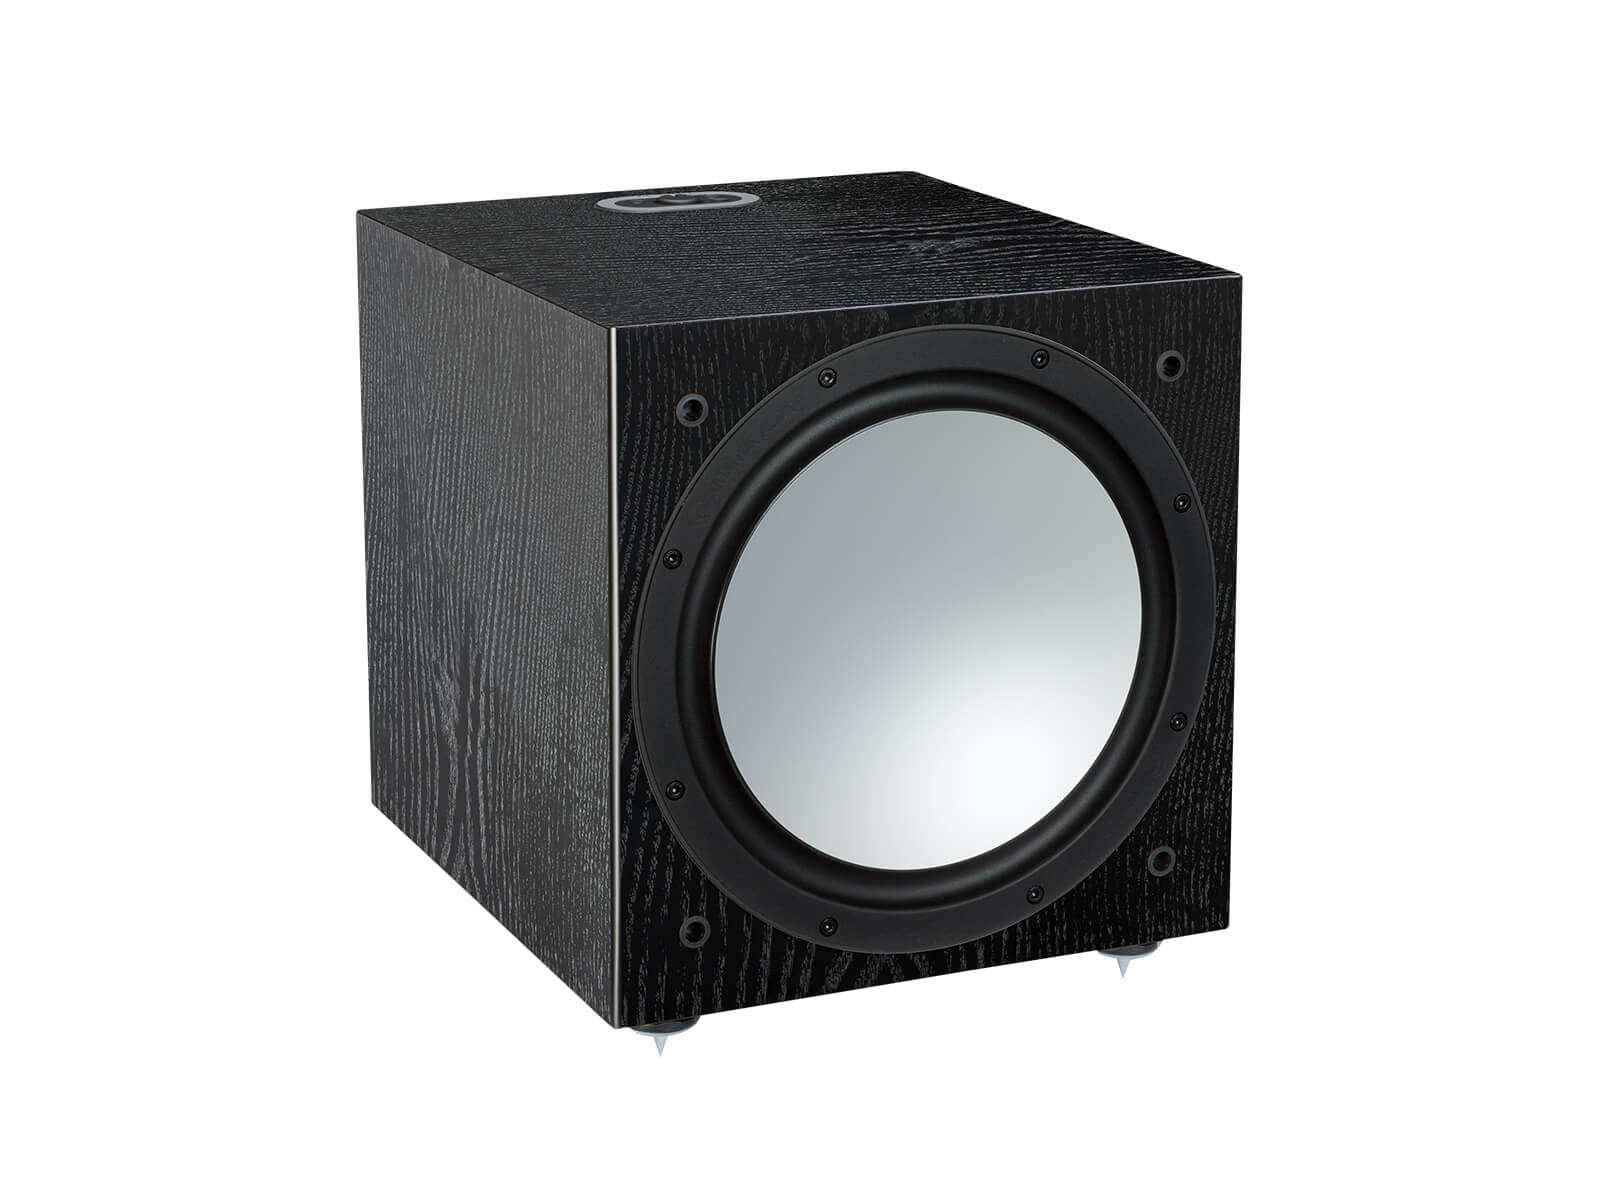 Silver W-12, grille-less subwoofer, with a black oak finish.